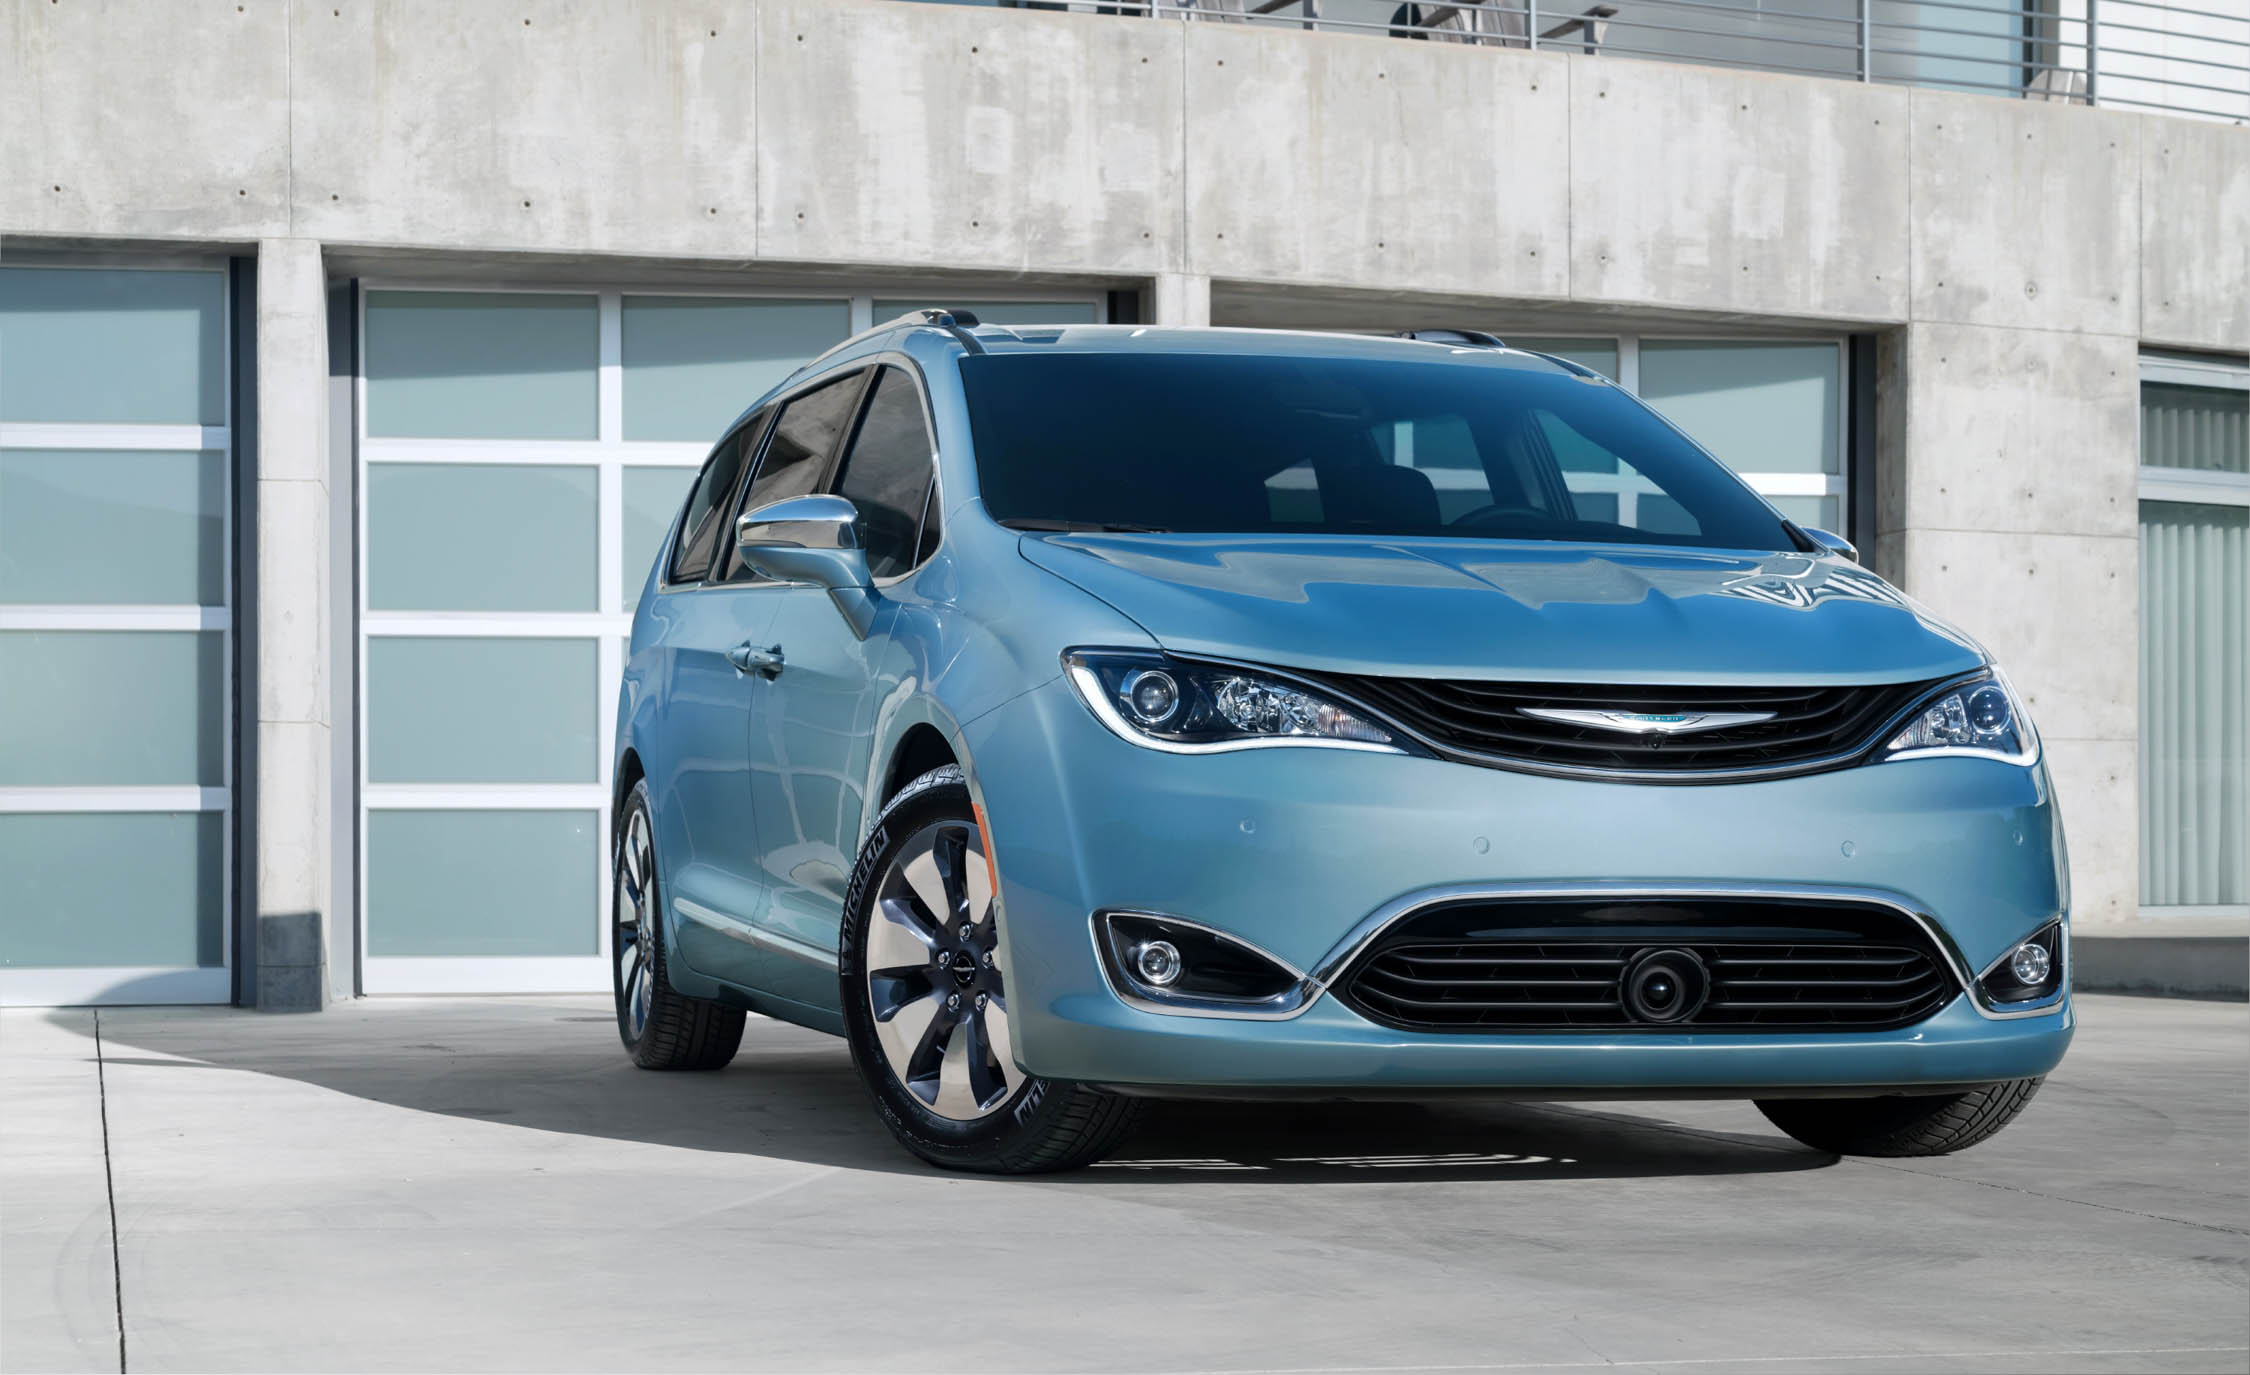 2017 Chrysler Pacifica Hybrid (Photo 8 of 10)